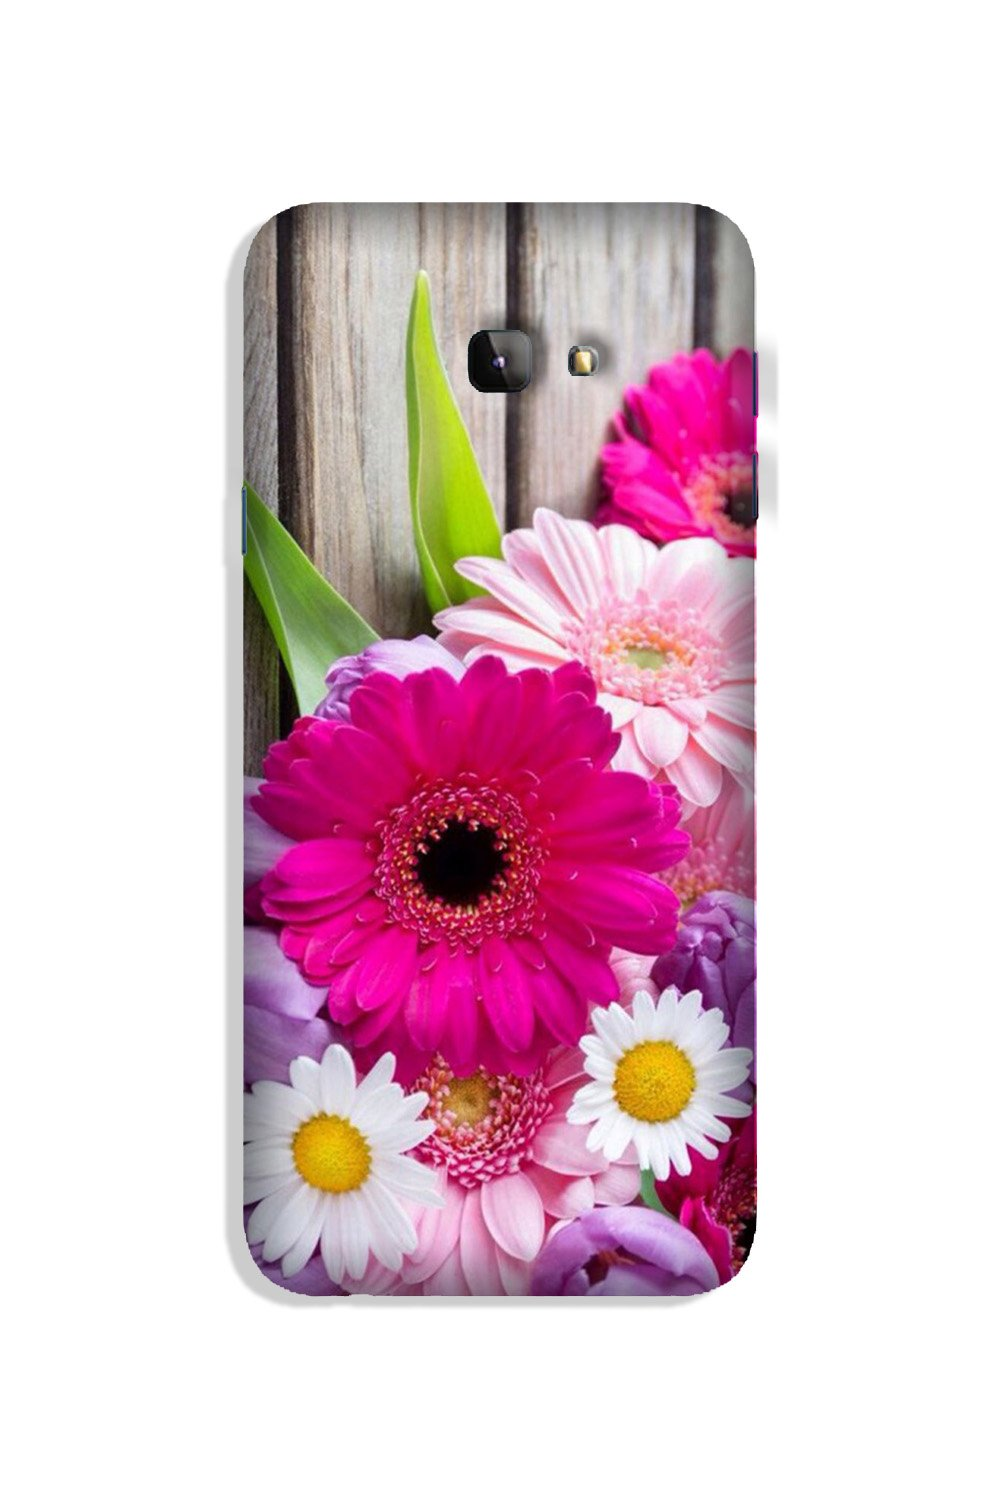 Coloful Daisy2 Case for Galaxy J4 Plus